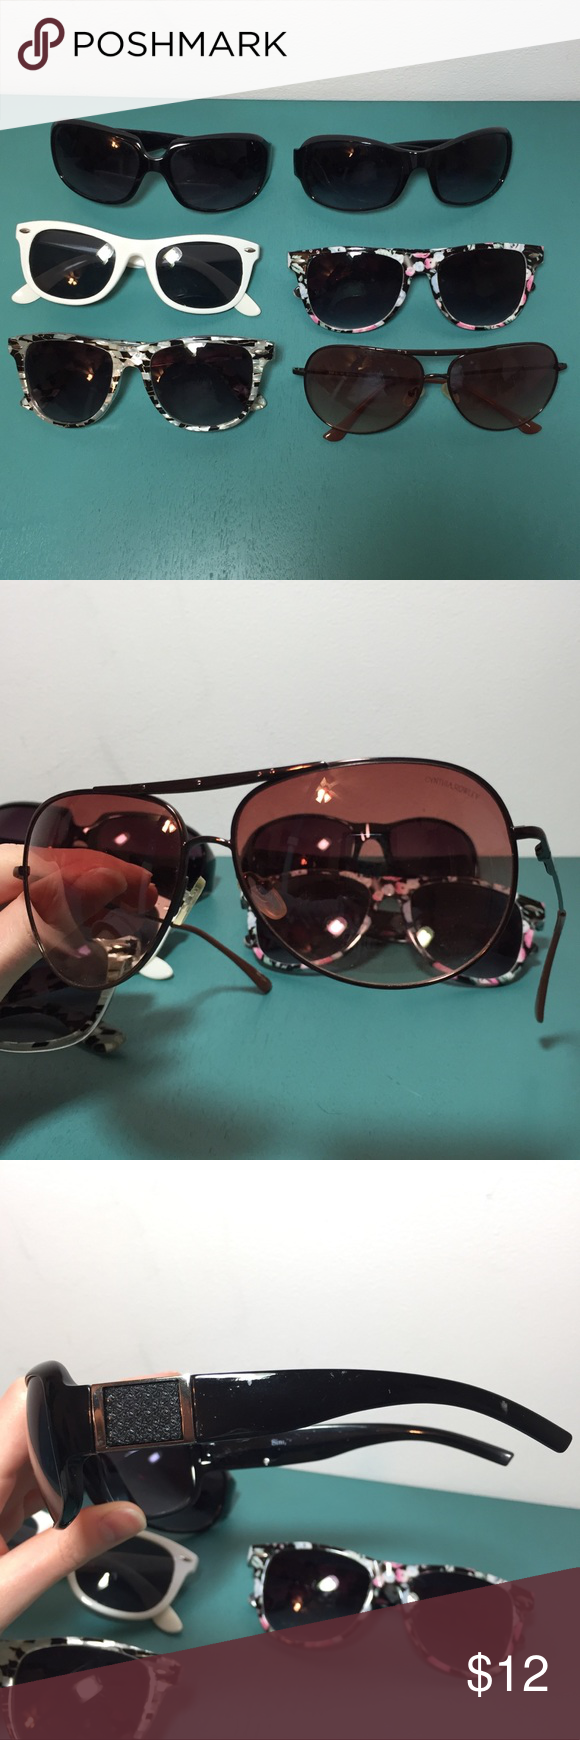 5c916149ea8 Lot of Six Pairs of Sunglasses Lot of six unique pairs of sunglasses.  Cynthia Rowley